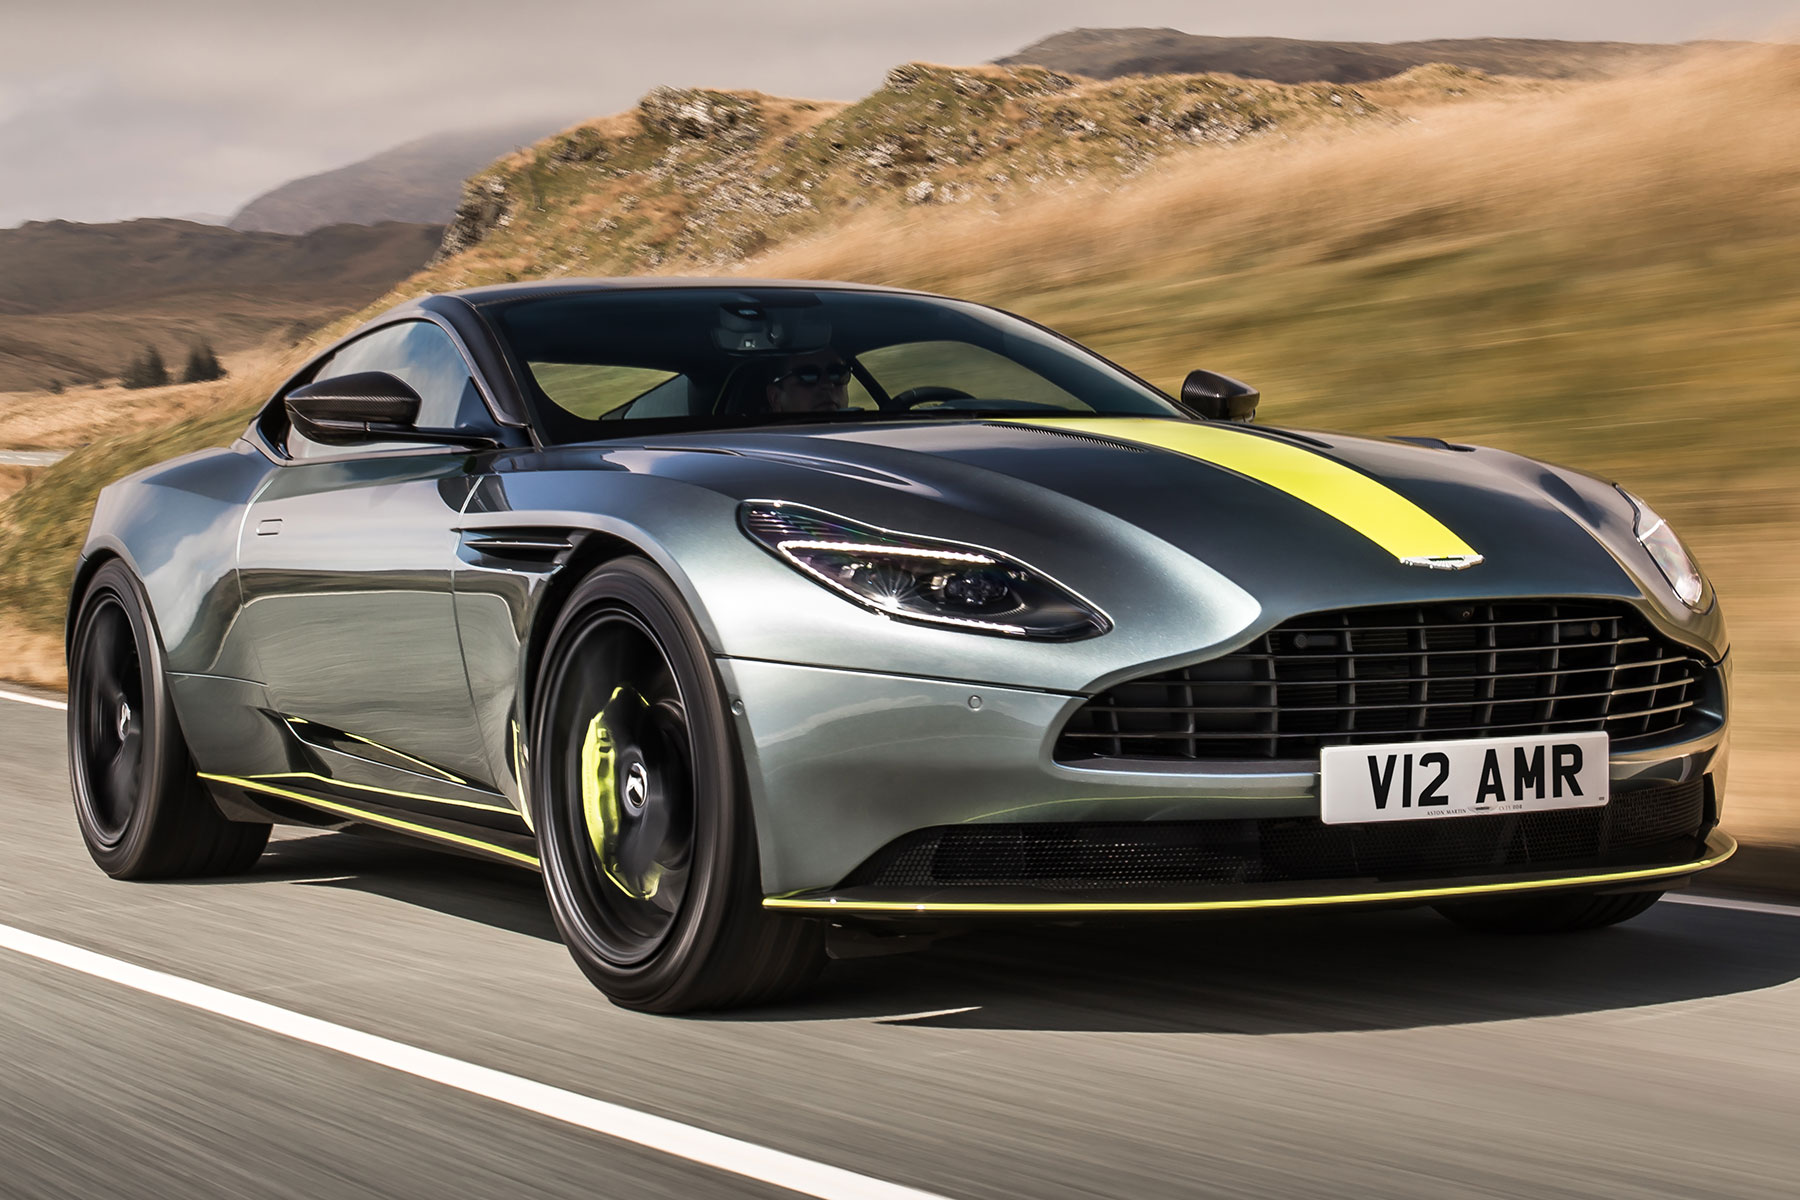 aston martin db11 amr review: 639hp supercar earns its stripes